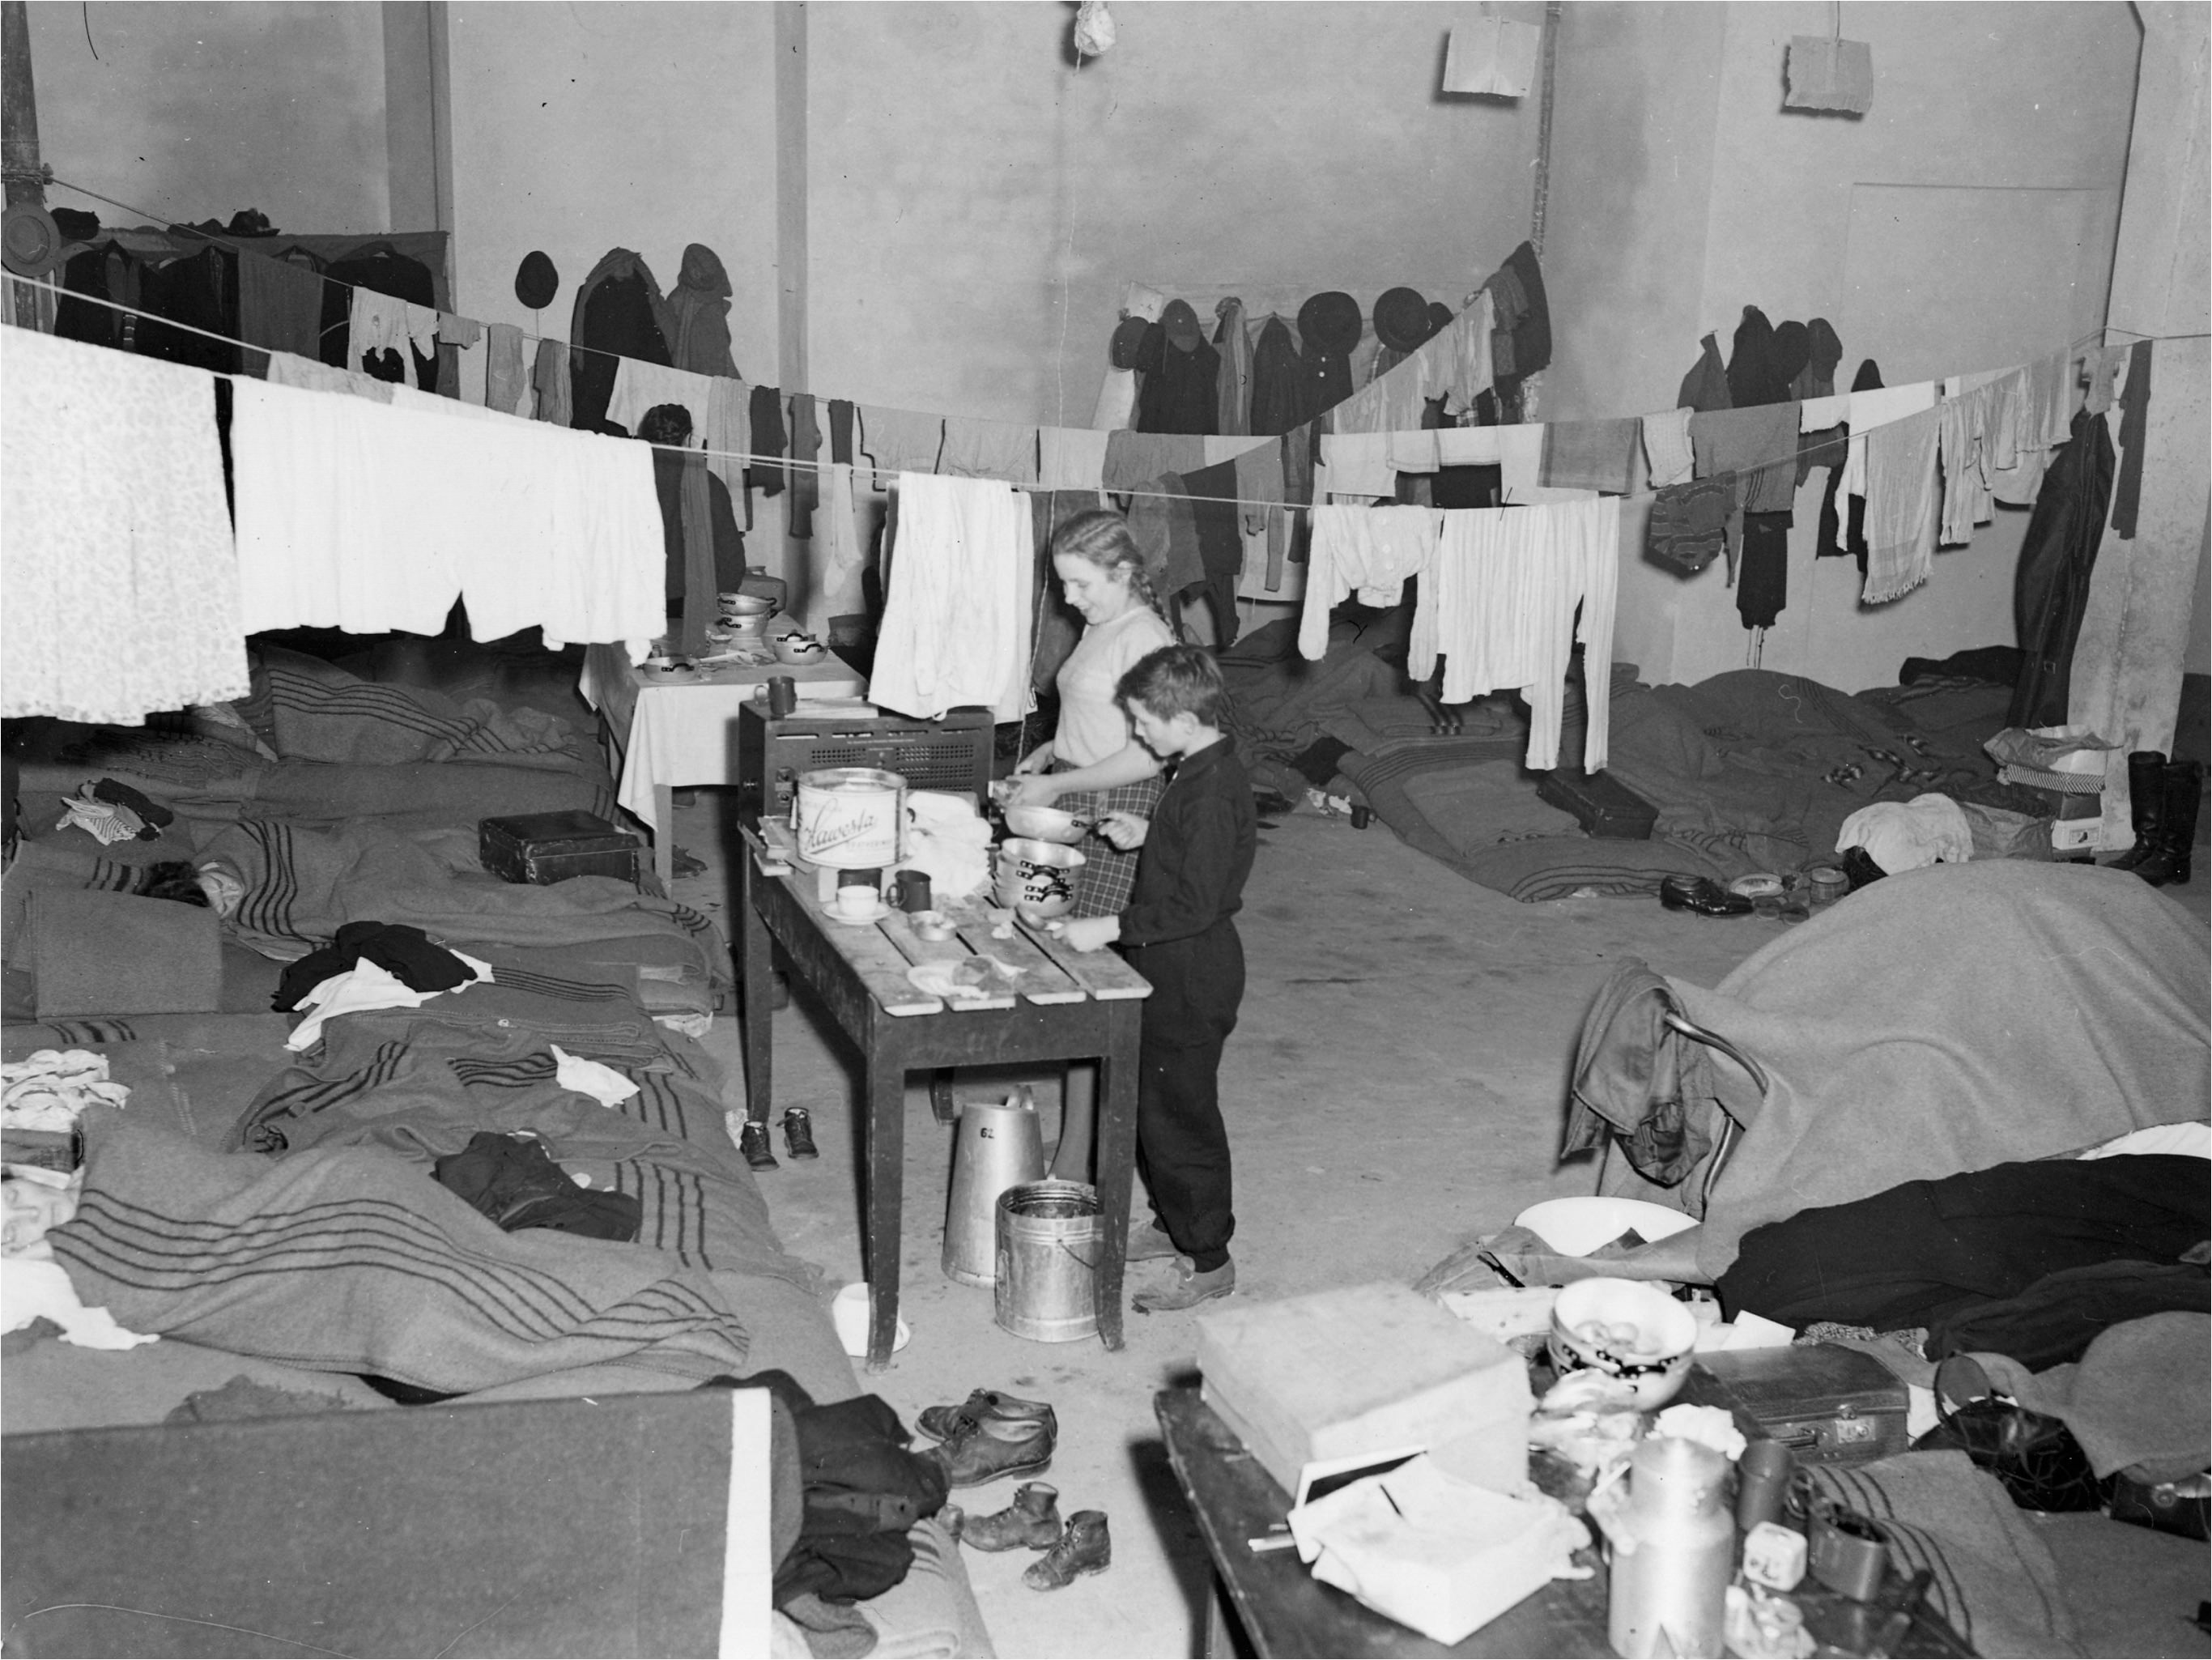 Refugees from the East, are pictured in the Karlsbad refugee camp in West Berlin, Germany, January 20, 1953, in their quarter that's beeing used for sleeping cooking and washing. With a daily average of about 700 East German refugees arriving in West Berlin, the city administration faces growing accomodation problems. (AP Photo/Werner Kreusch)